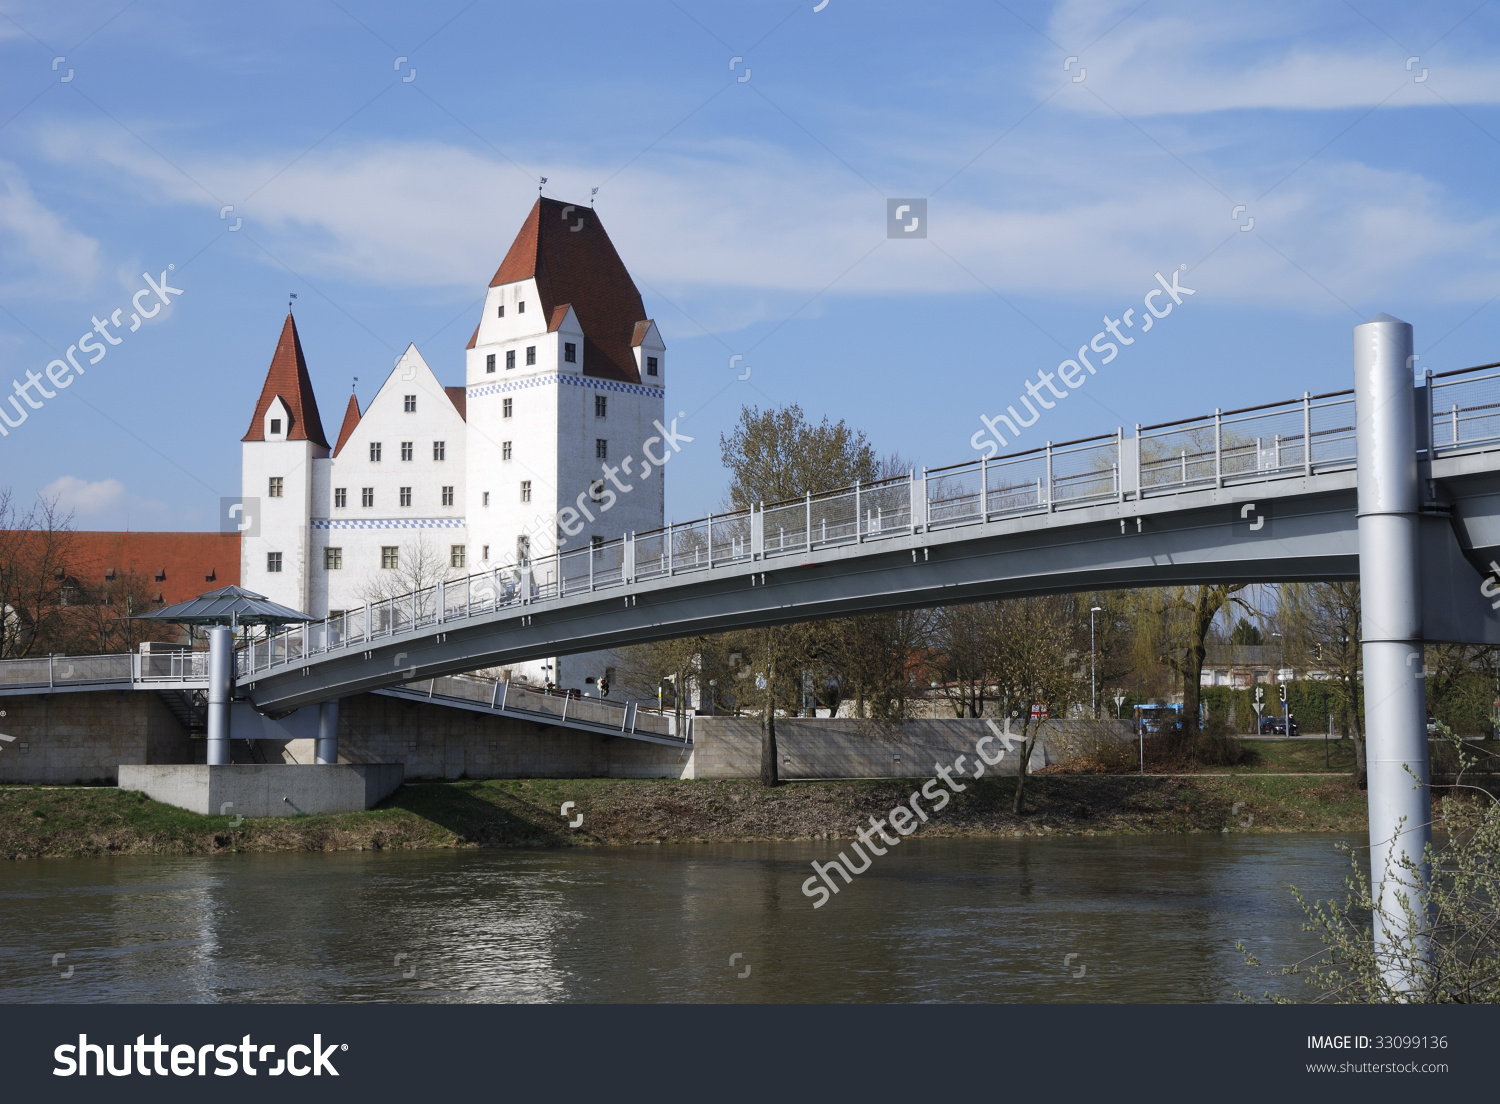 The Castle Of Ingolstadt (Neues Schloss) Stock Photo 33099136.